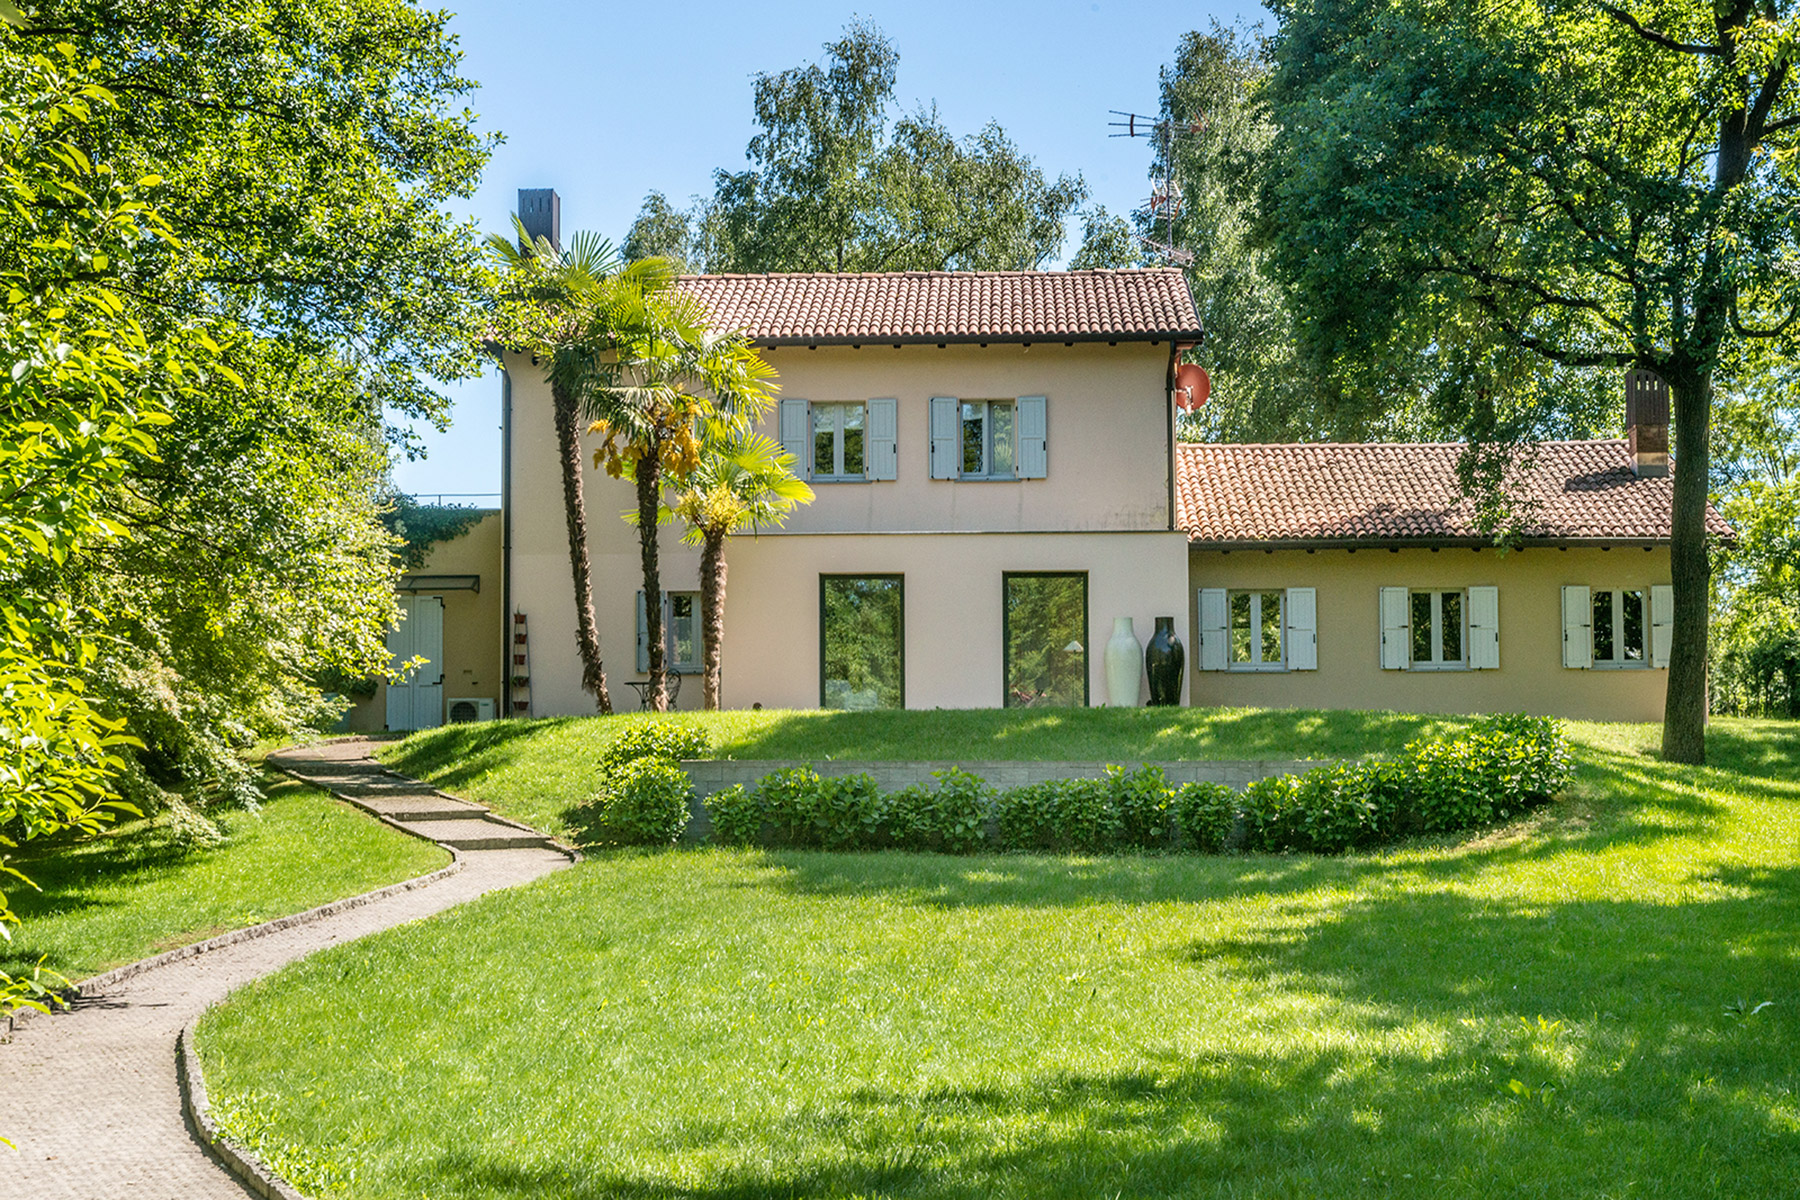 Maison unifamiliale pour l Vente à Modern country house with private garden Agrate Conturbia, Novara Italie